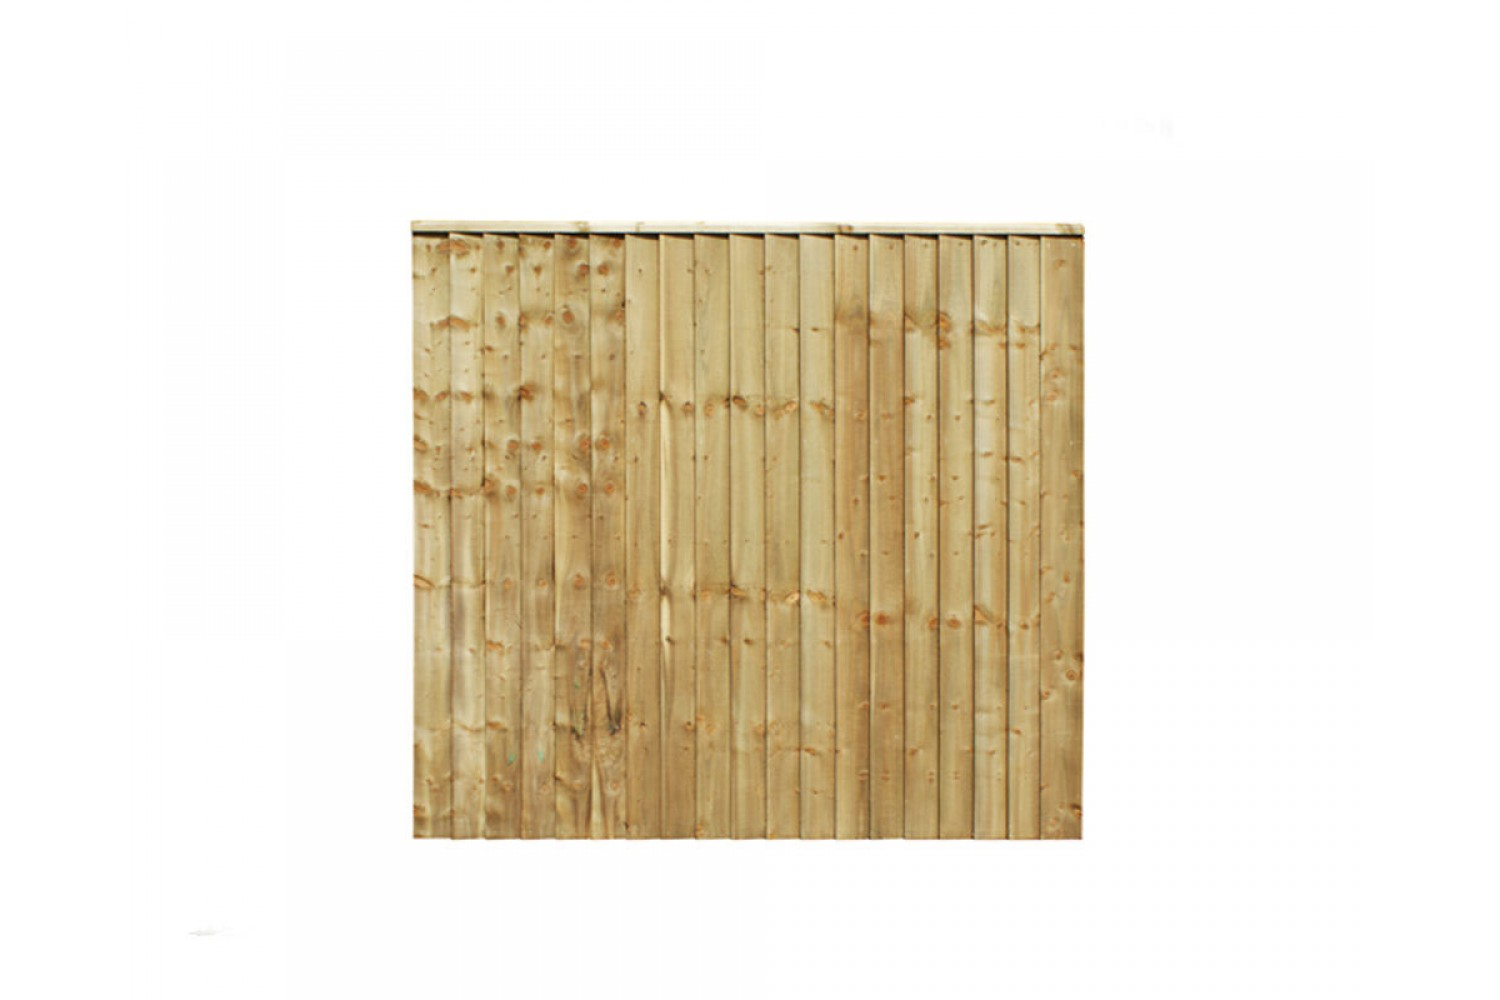 Forest Featheredge Fence Panel Pressure Treated Dark Brown Uk Fencing Lsd Co Uk